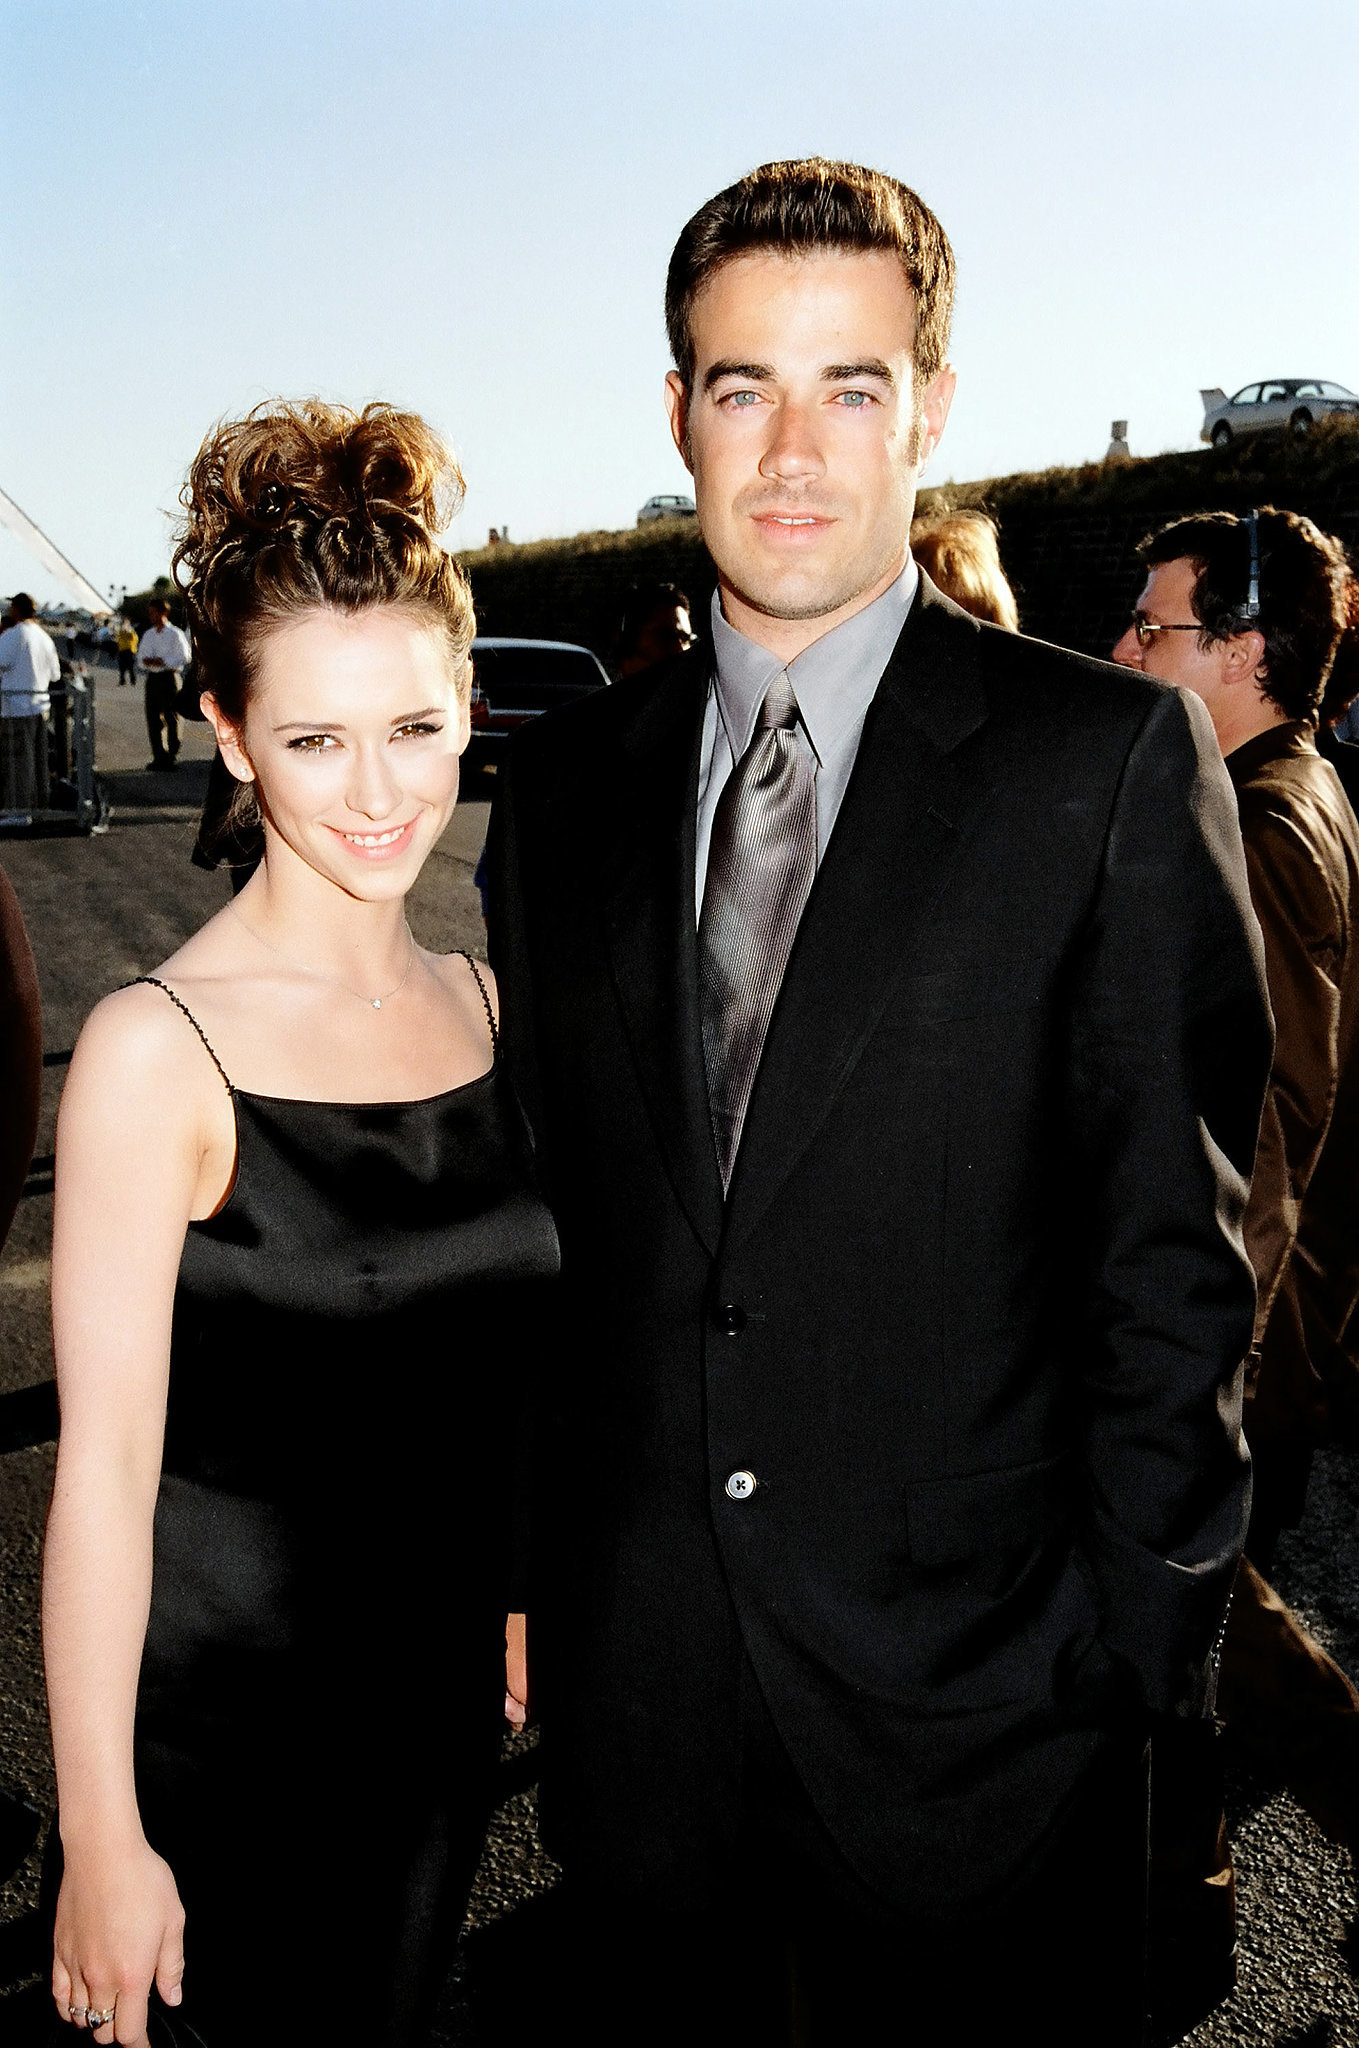 Carson Daly and Jennifer Love Hewitt were a thing.